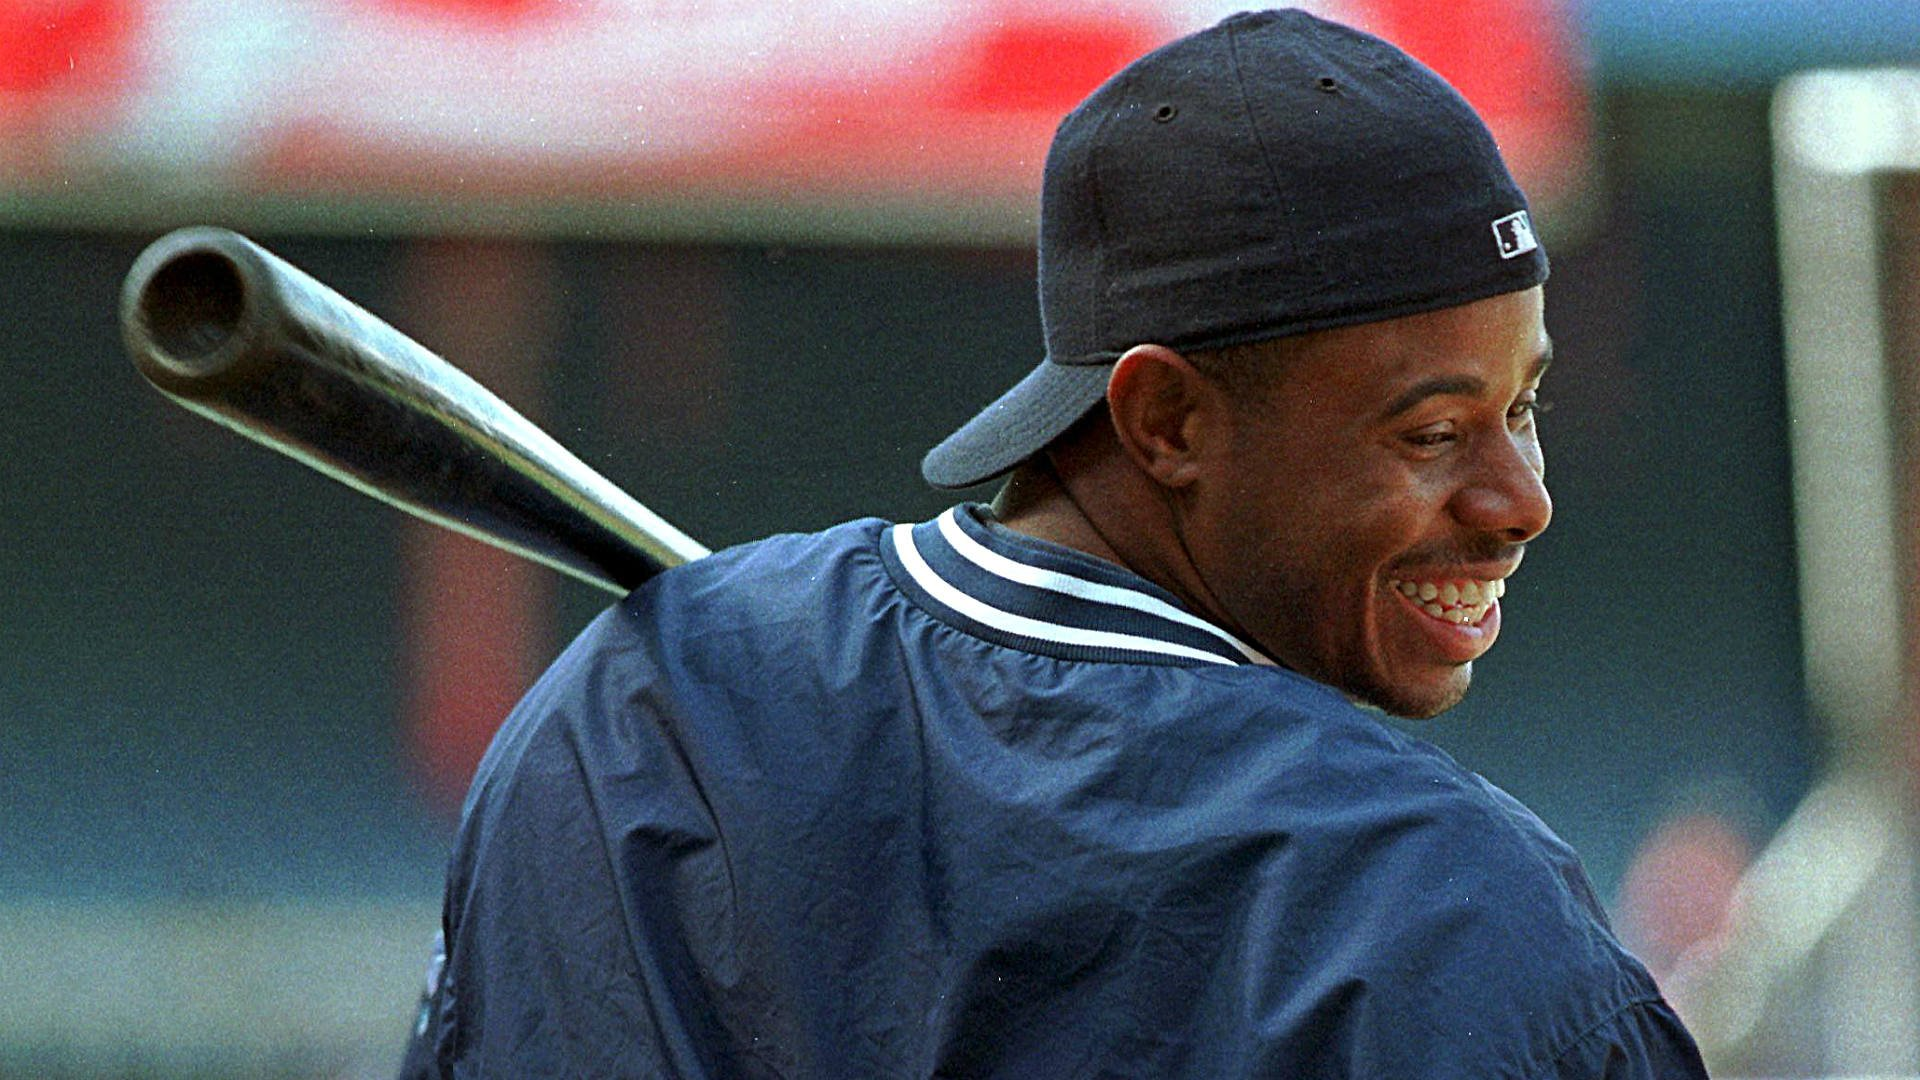 Happy birthday to Hall of Famer Ken Griffey Jr.   He turns 48 today, but he\s forever The Kid.